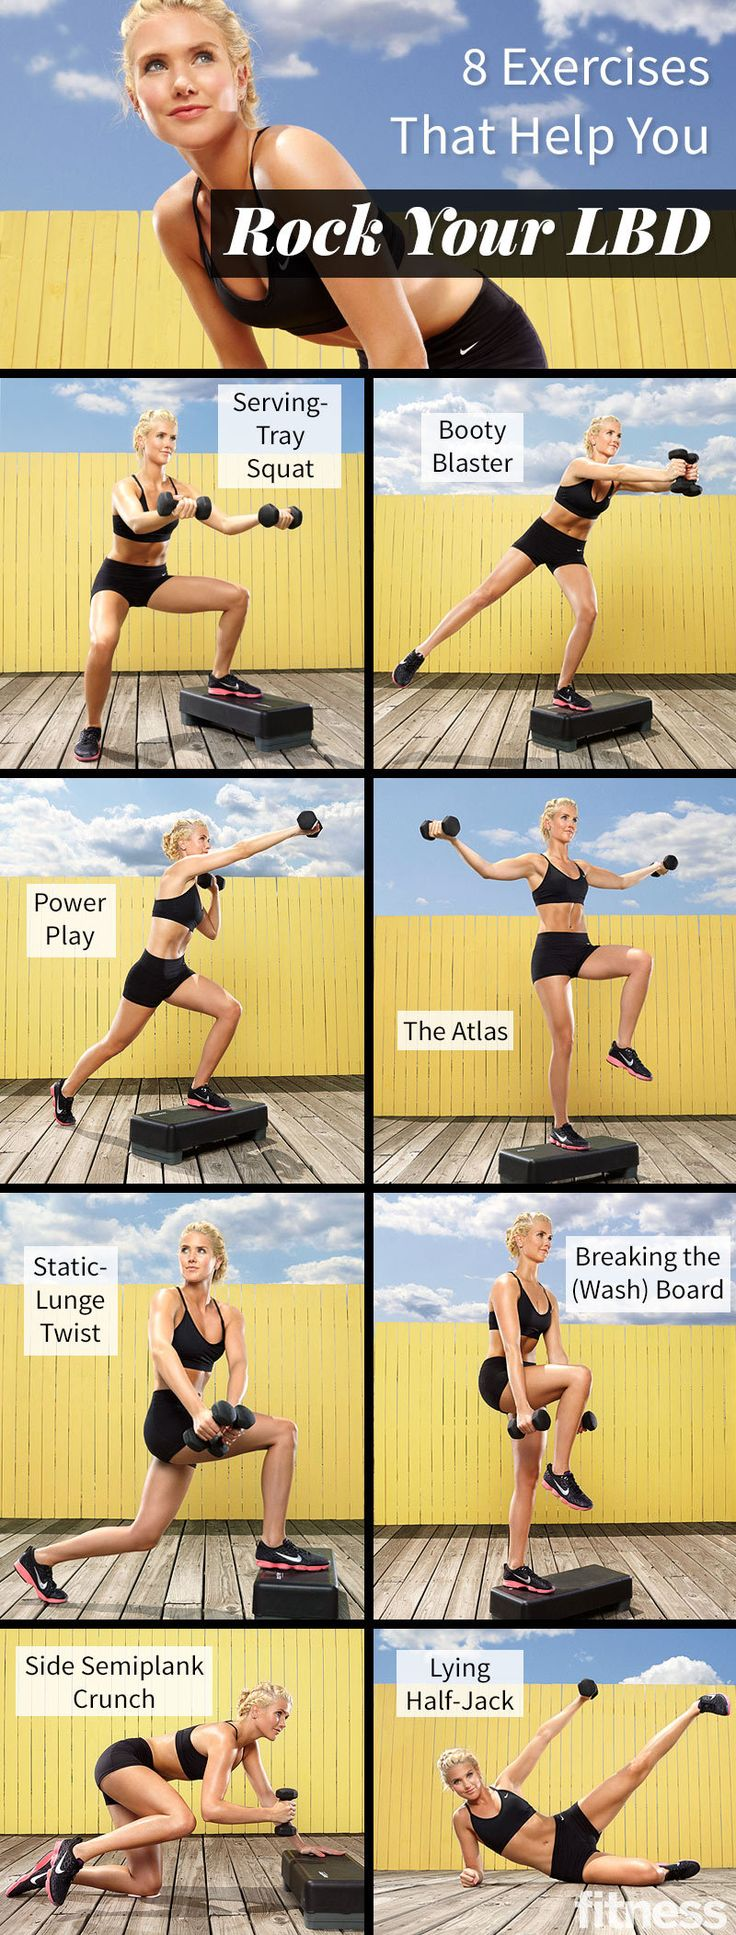 8 Exercises That Help You Rock Your LBD (full body circuit with weights)                                                                                                                                                                                 More